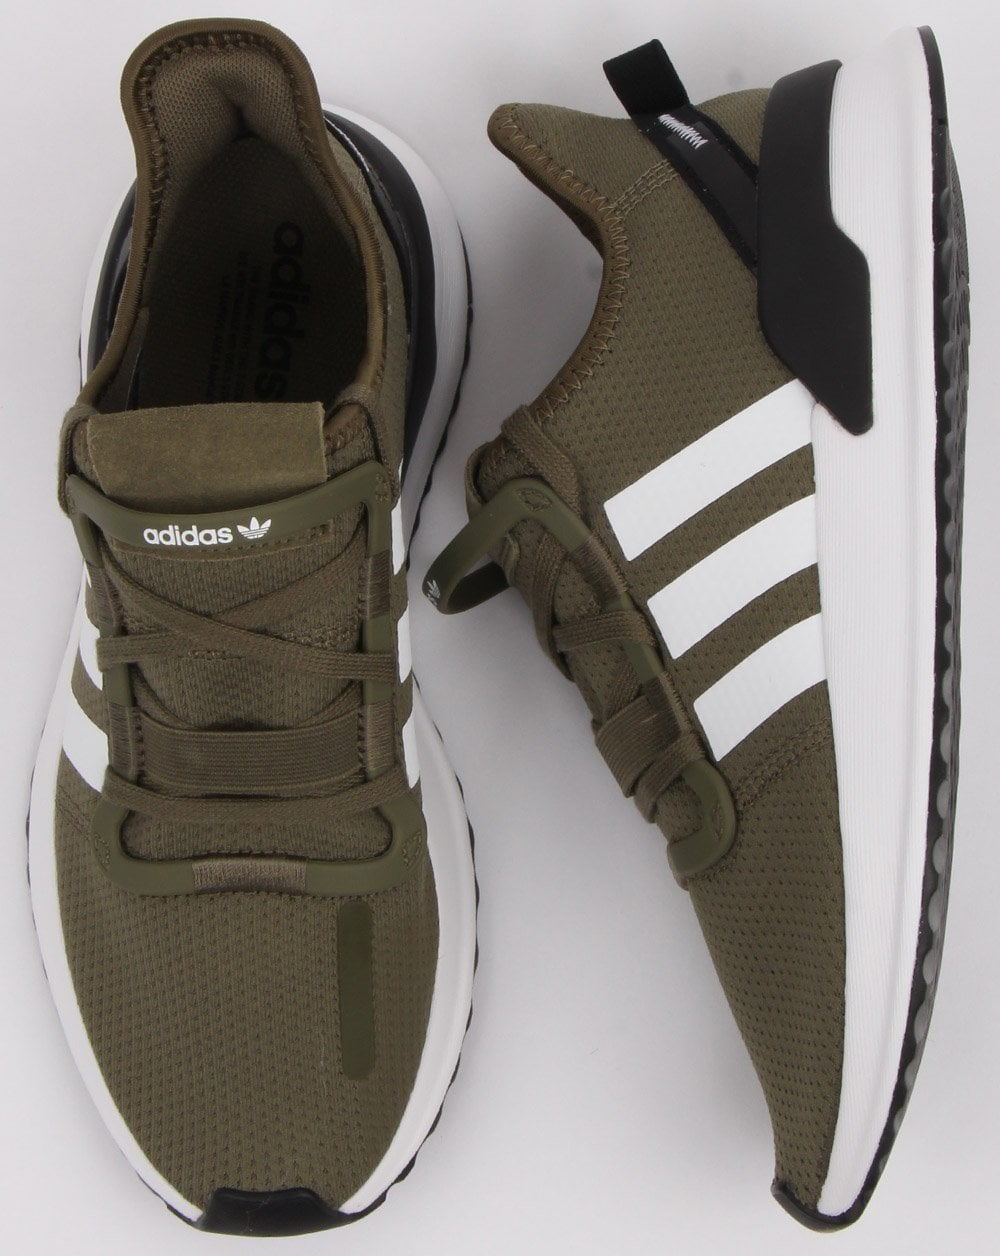 6f31aa1a457 Adidas U path Run Trainers Raw Khaki White - Shop More Adidas at 80sCC